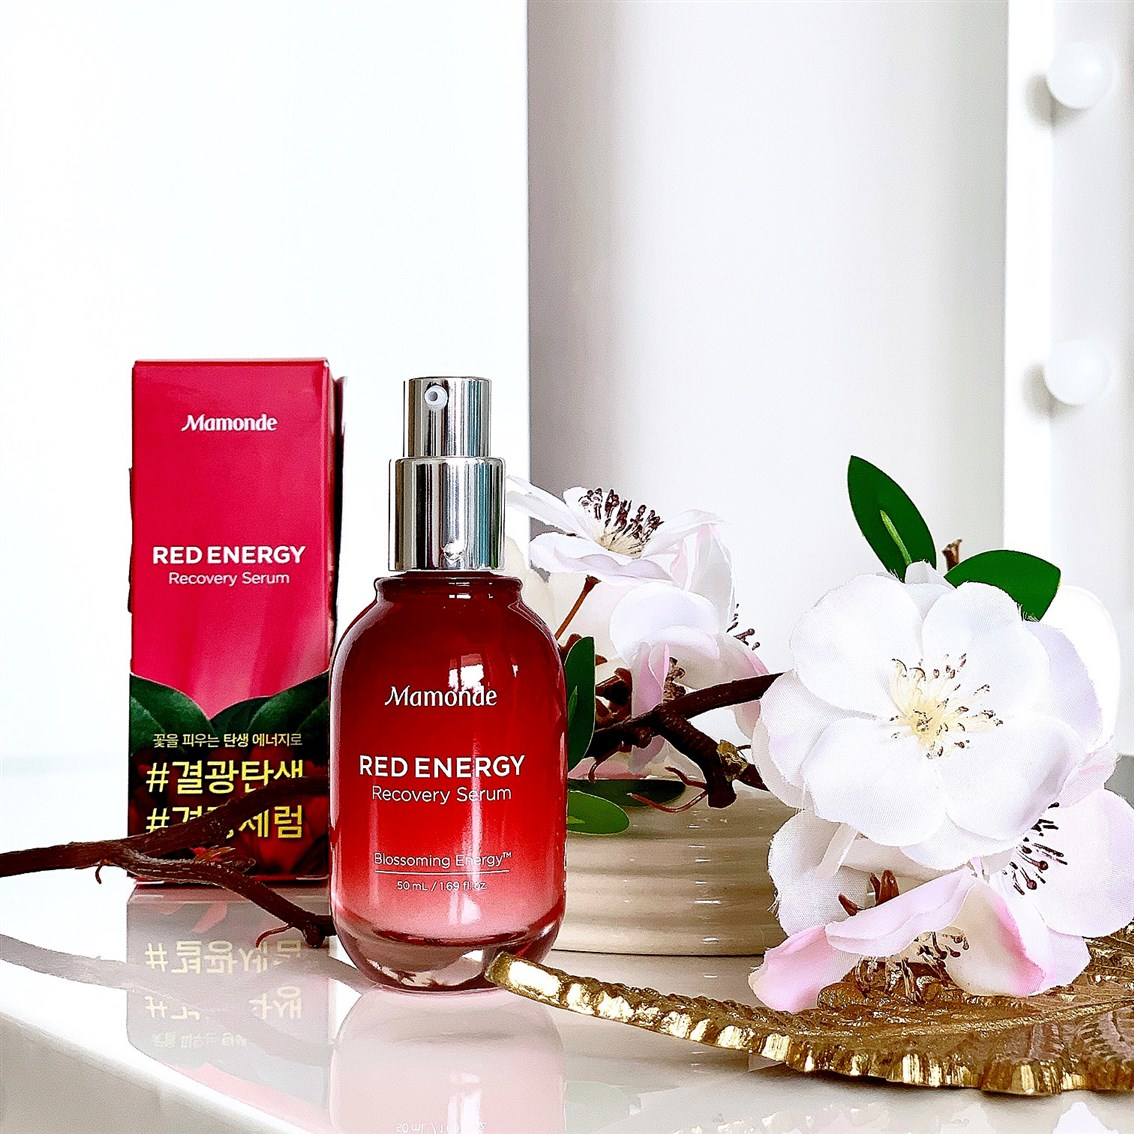 Mamonde Red Energy Recovery Serum blog